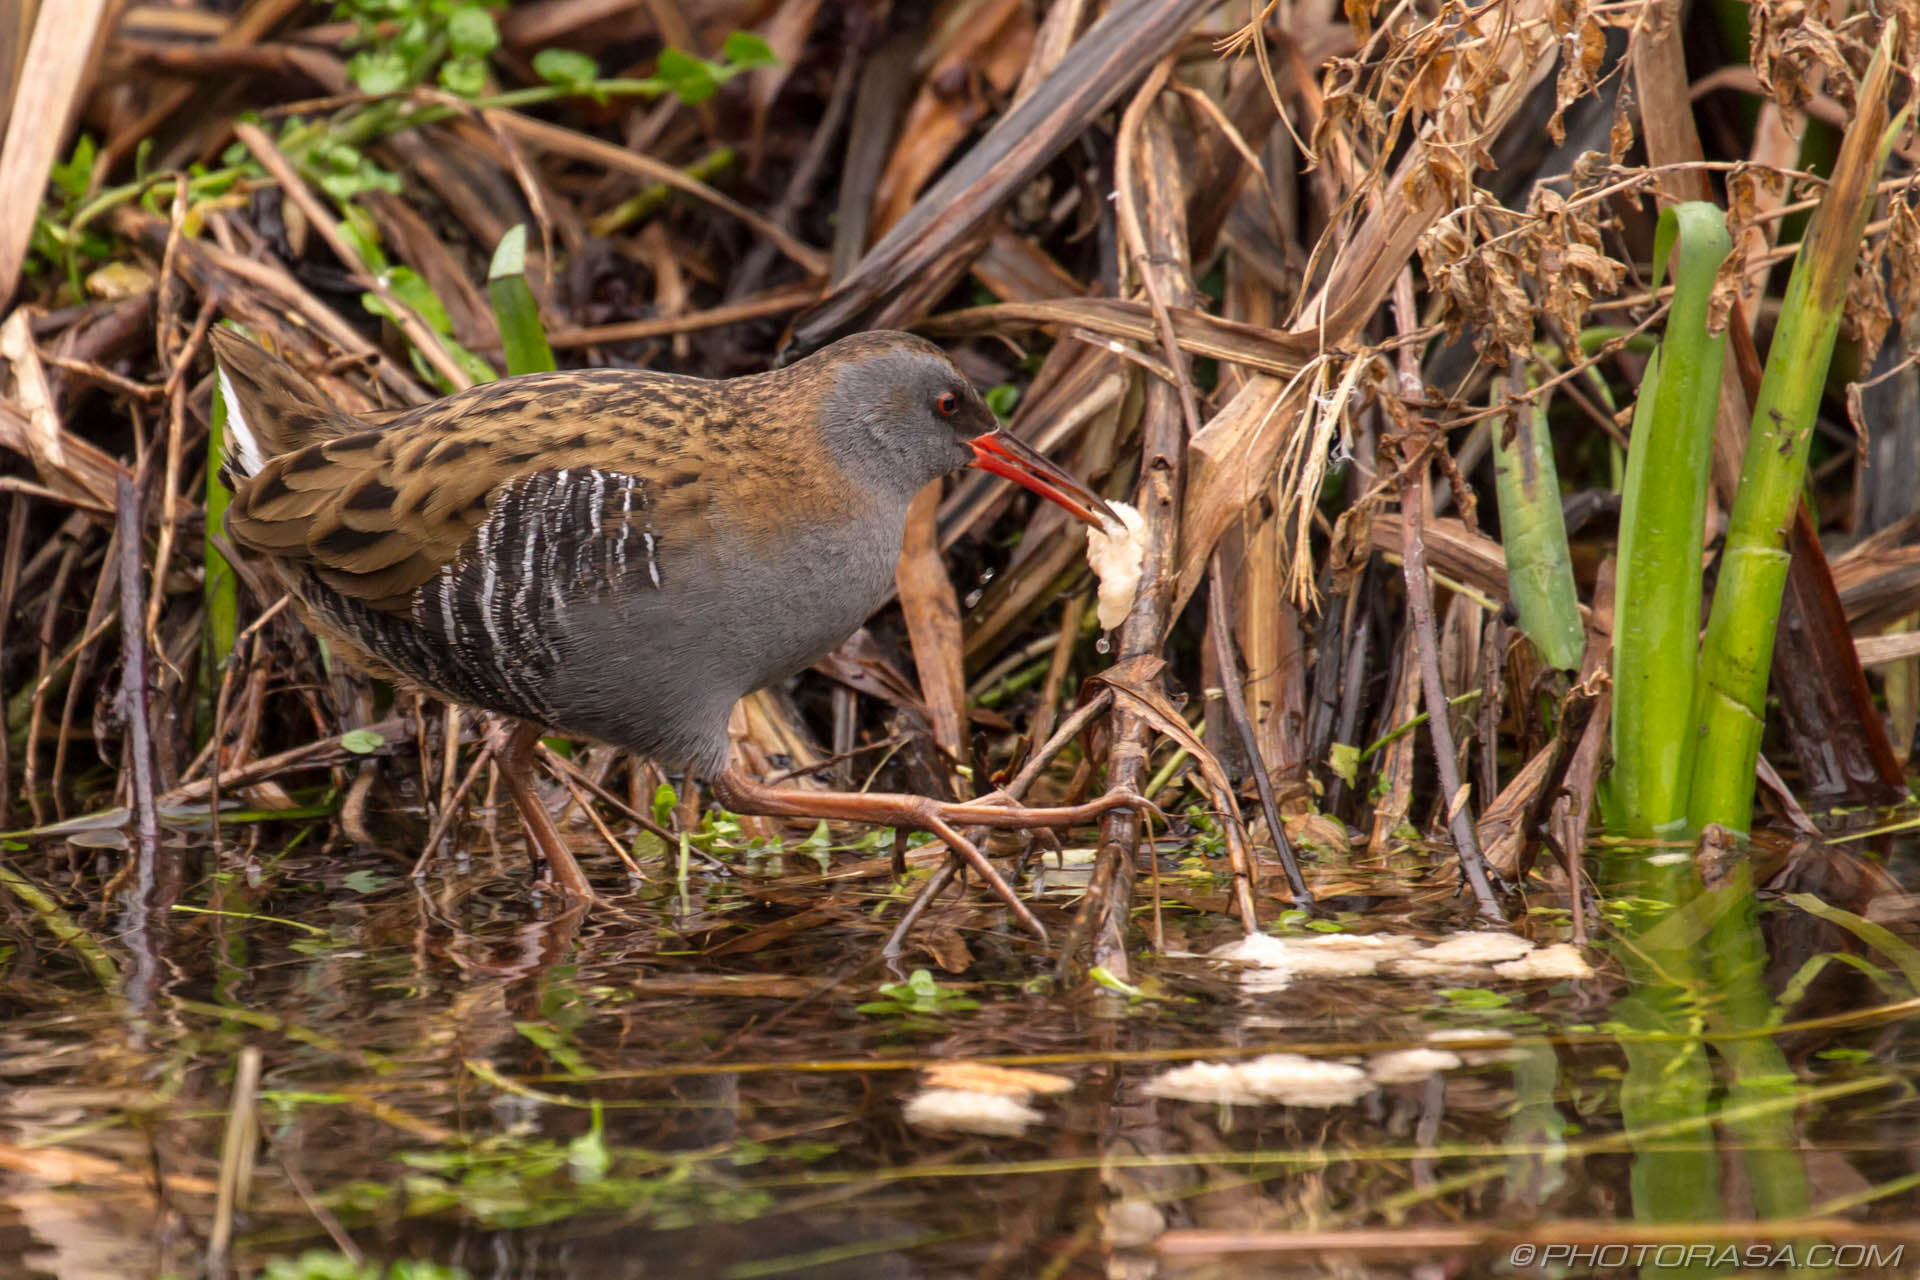 http://photorasa.com/water-rail-by-the-stream/stepping-across-foliage/